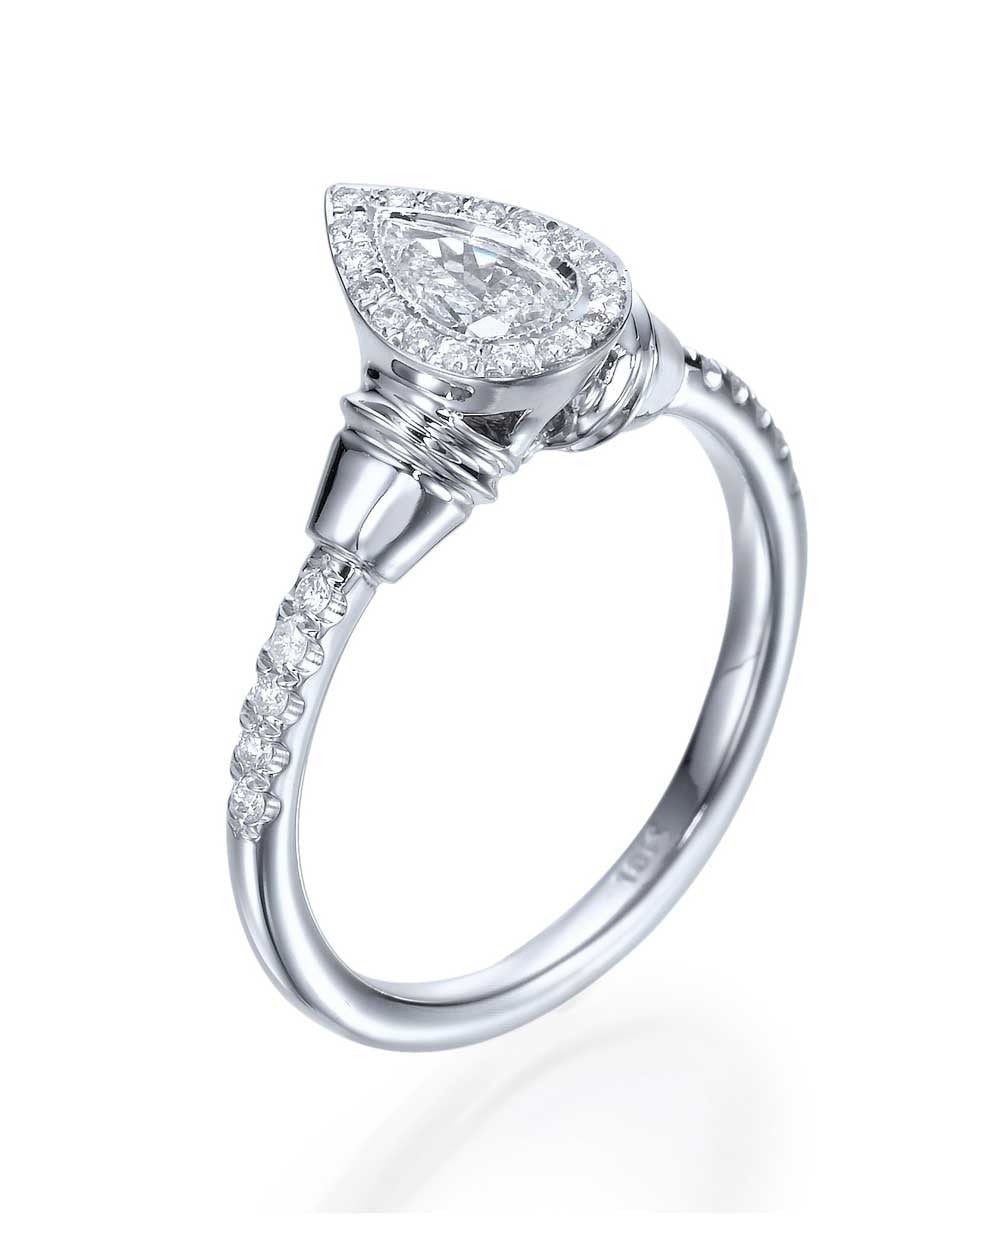 jewellery ring diamond platinum settings